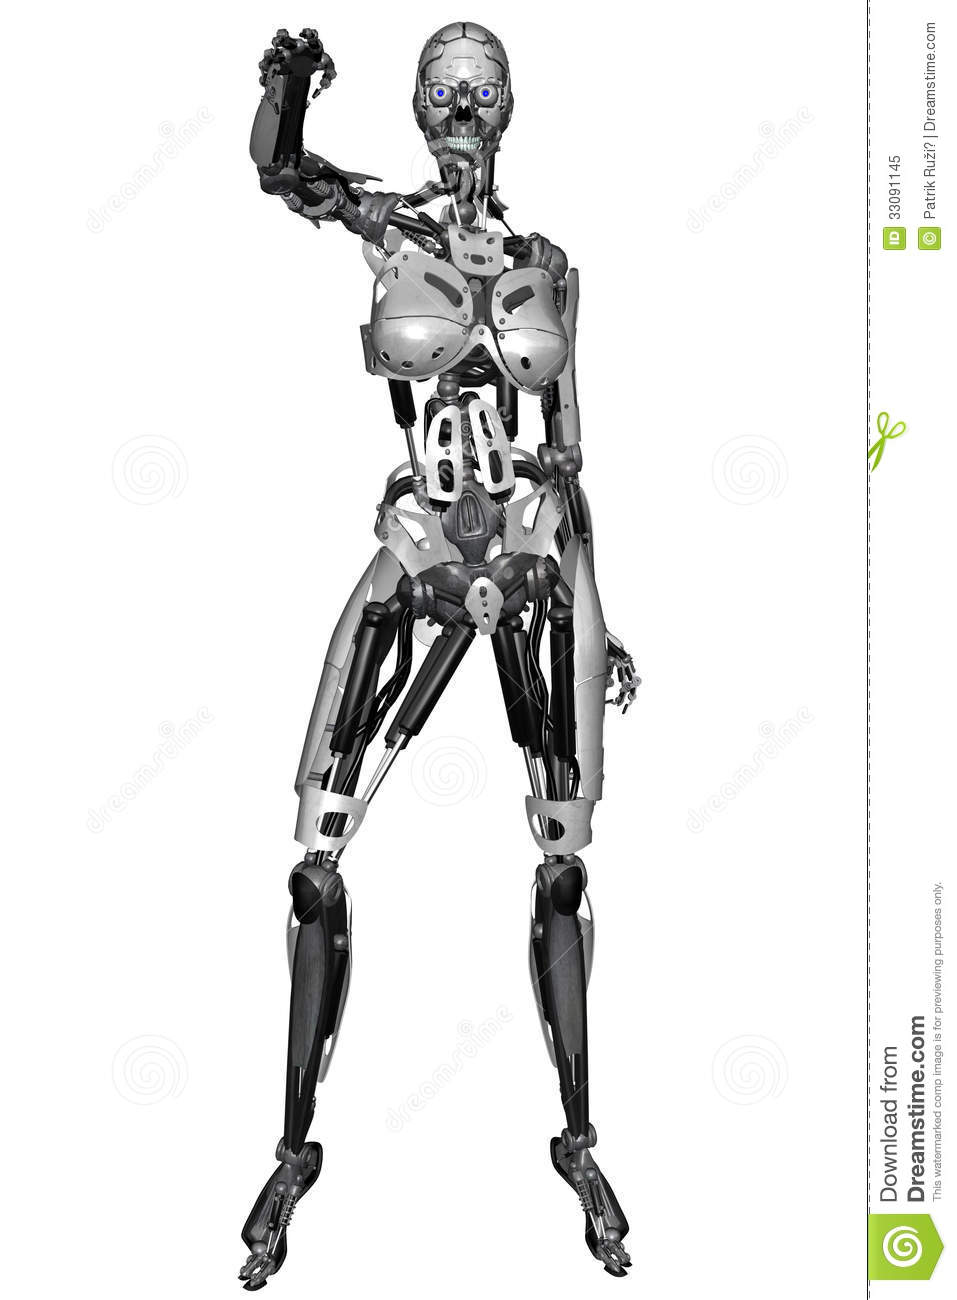 cyborg woman royalty free stock photo